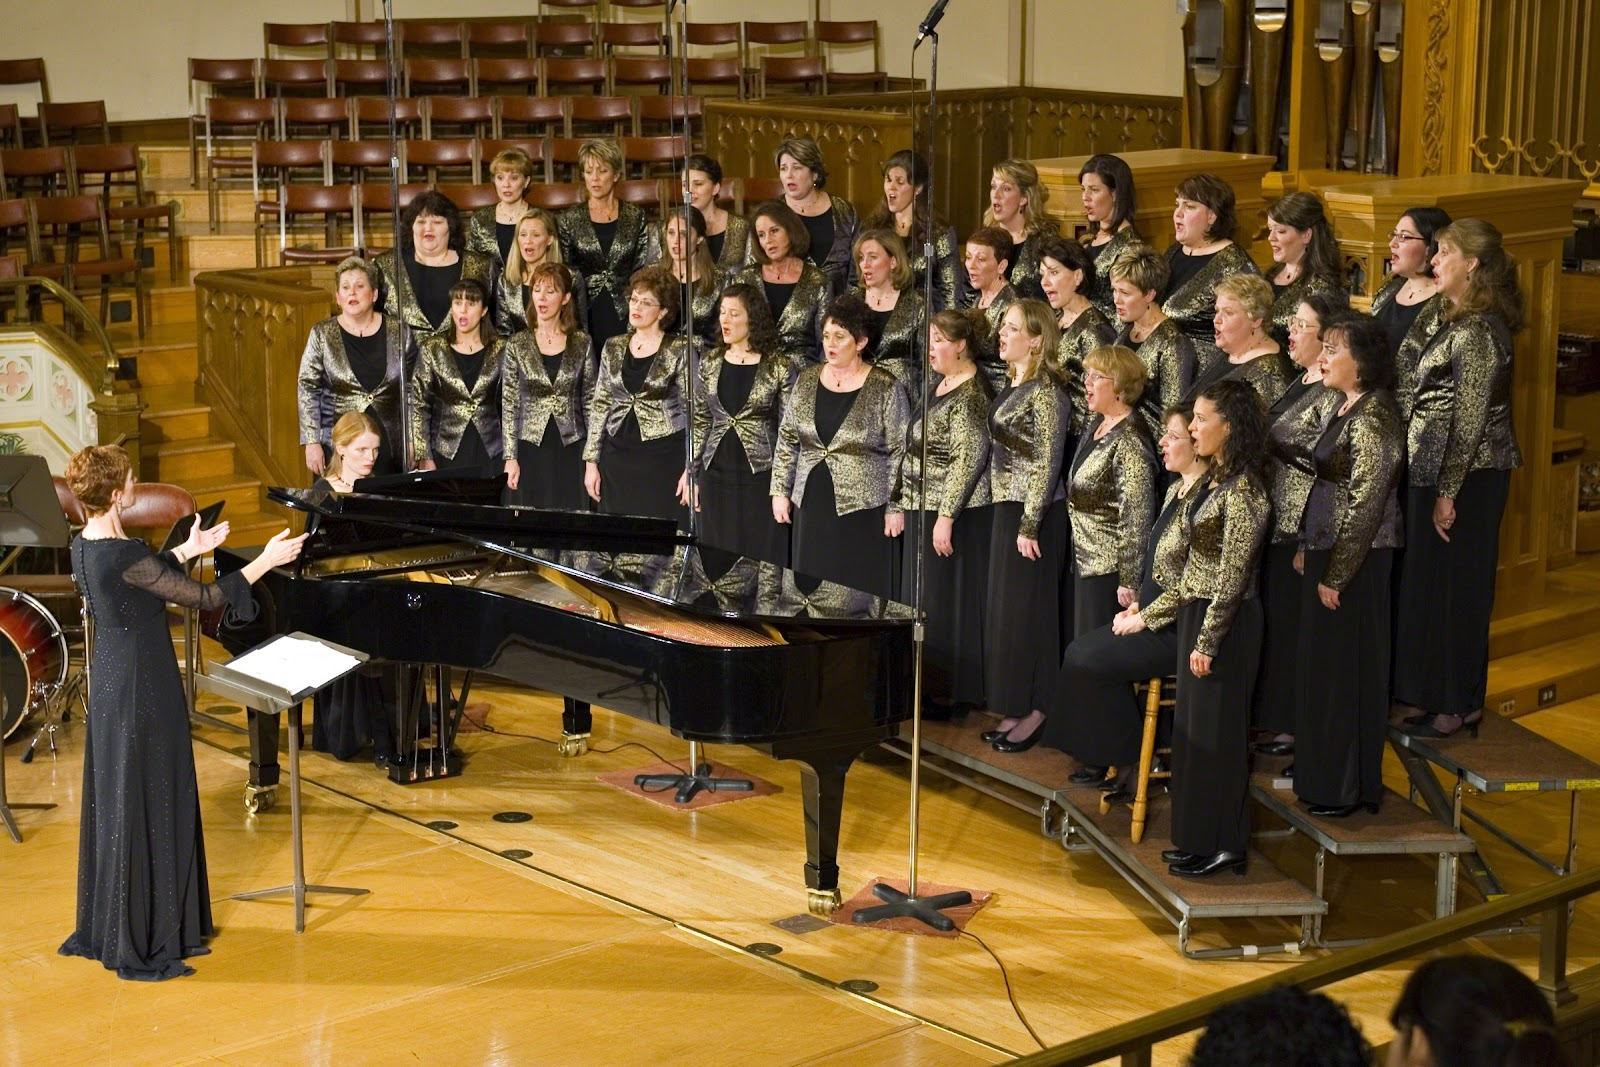 Choir sings in the Assembly Hall on Temple Square